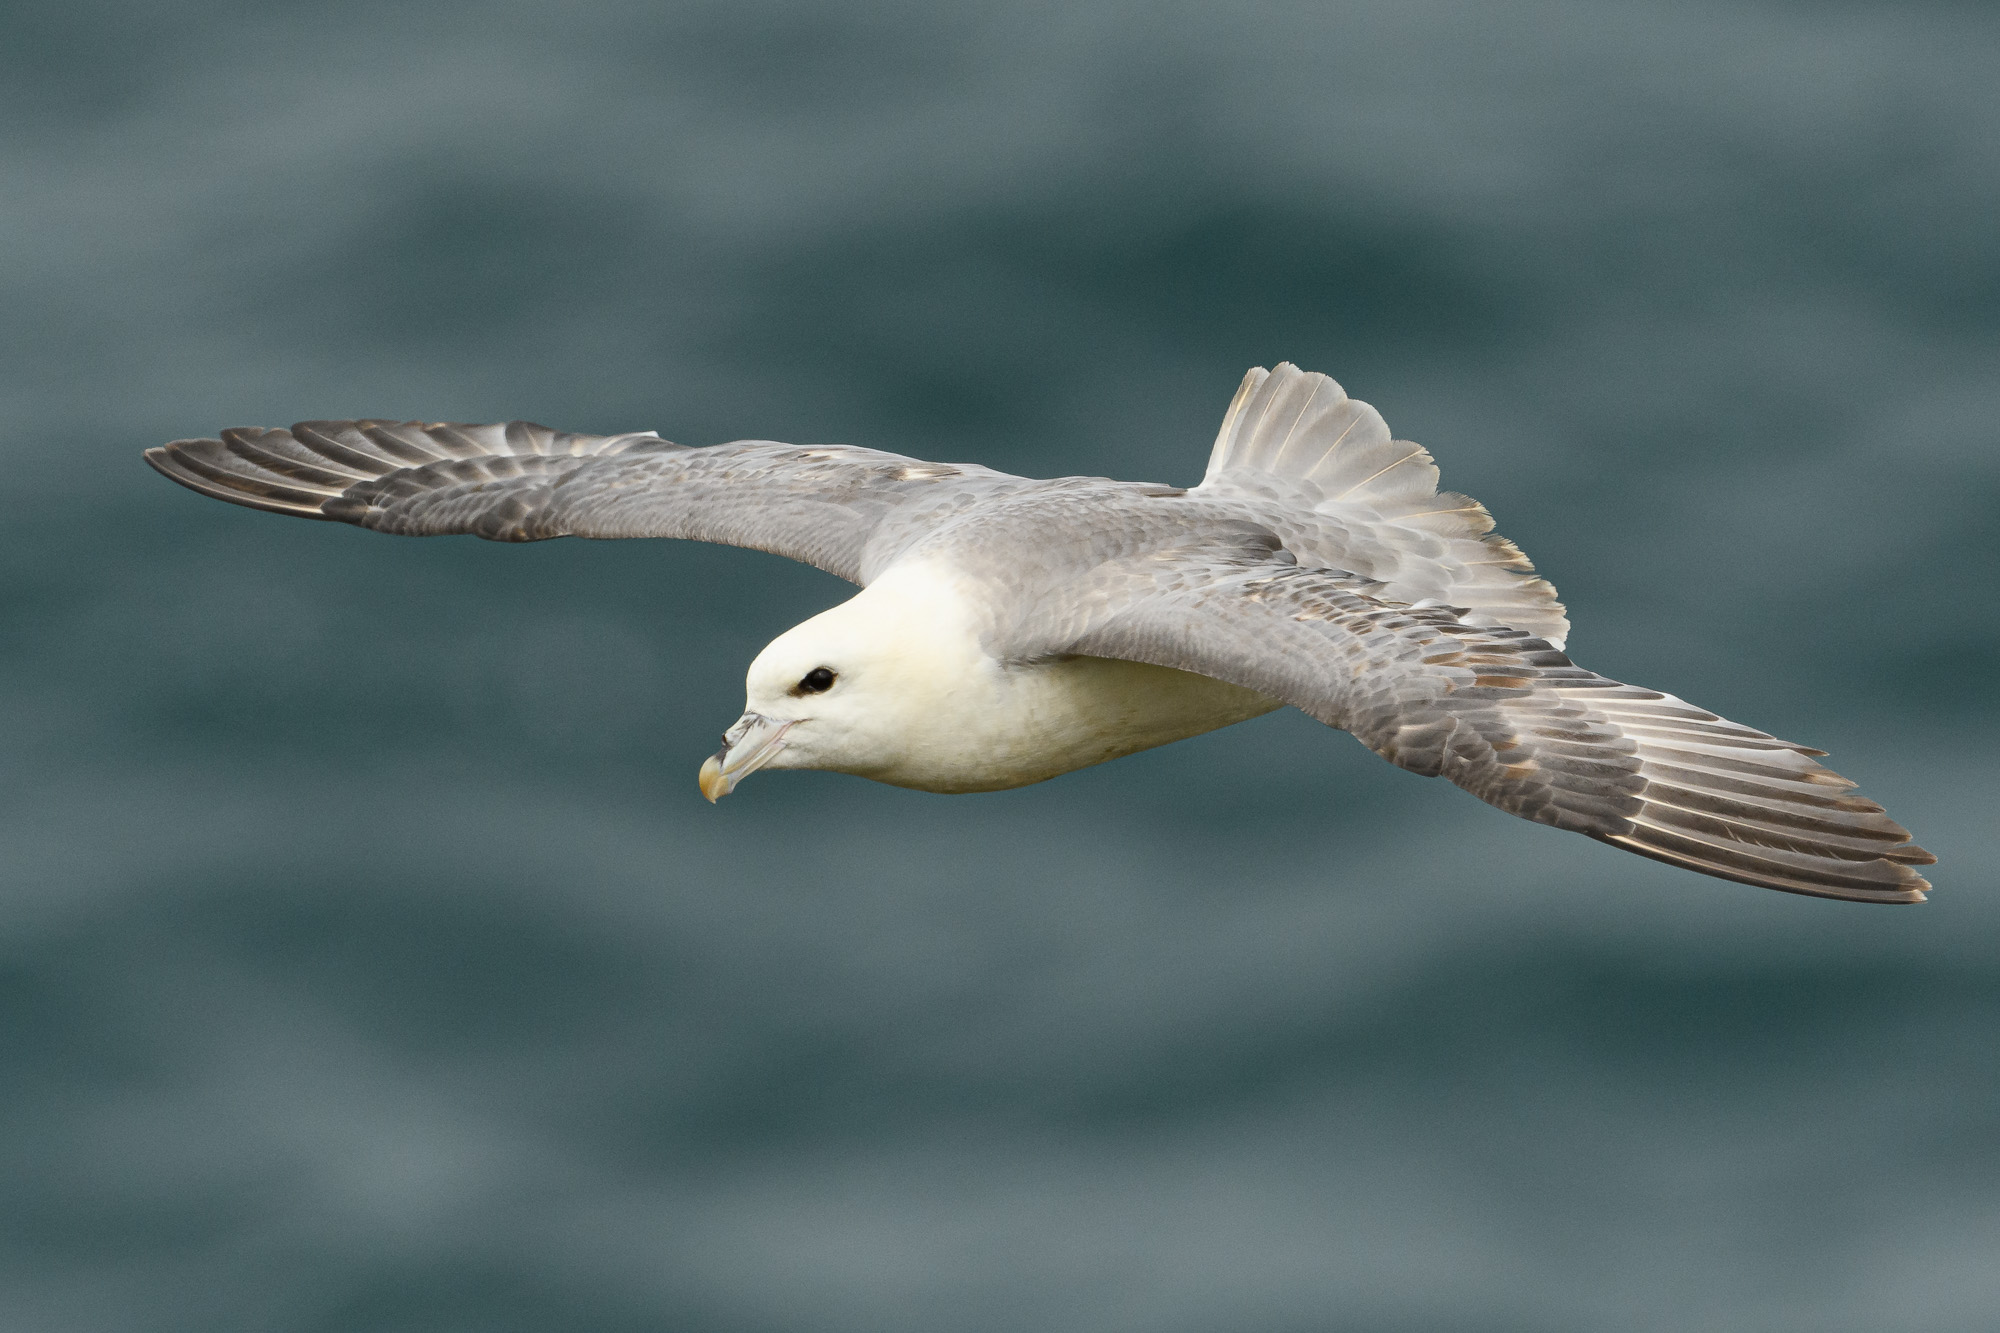 Fulmar in flight. These are members of the      Procellariiformes      which includes the albatrosses, and glide on stiffly outstretched wings.